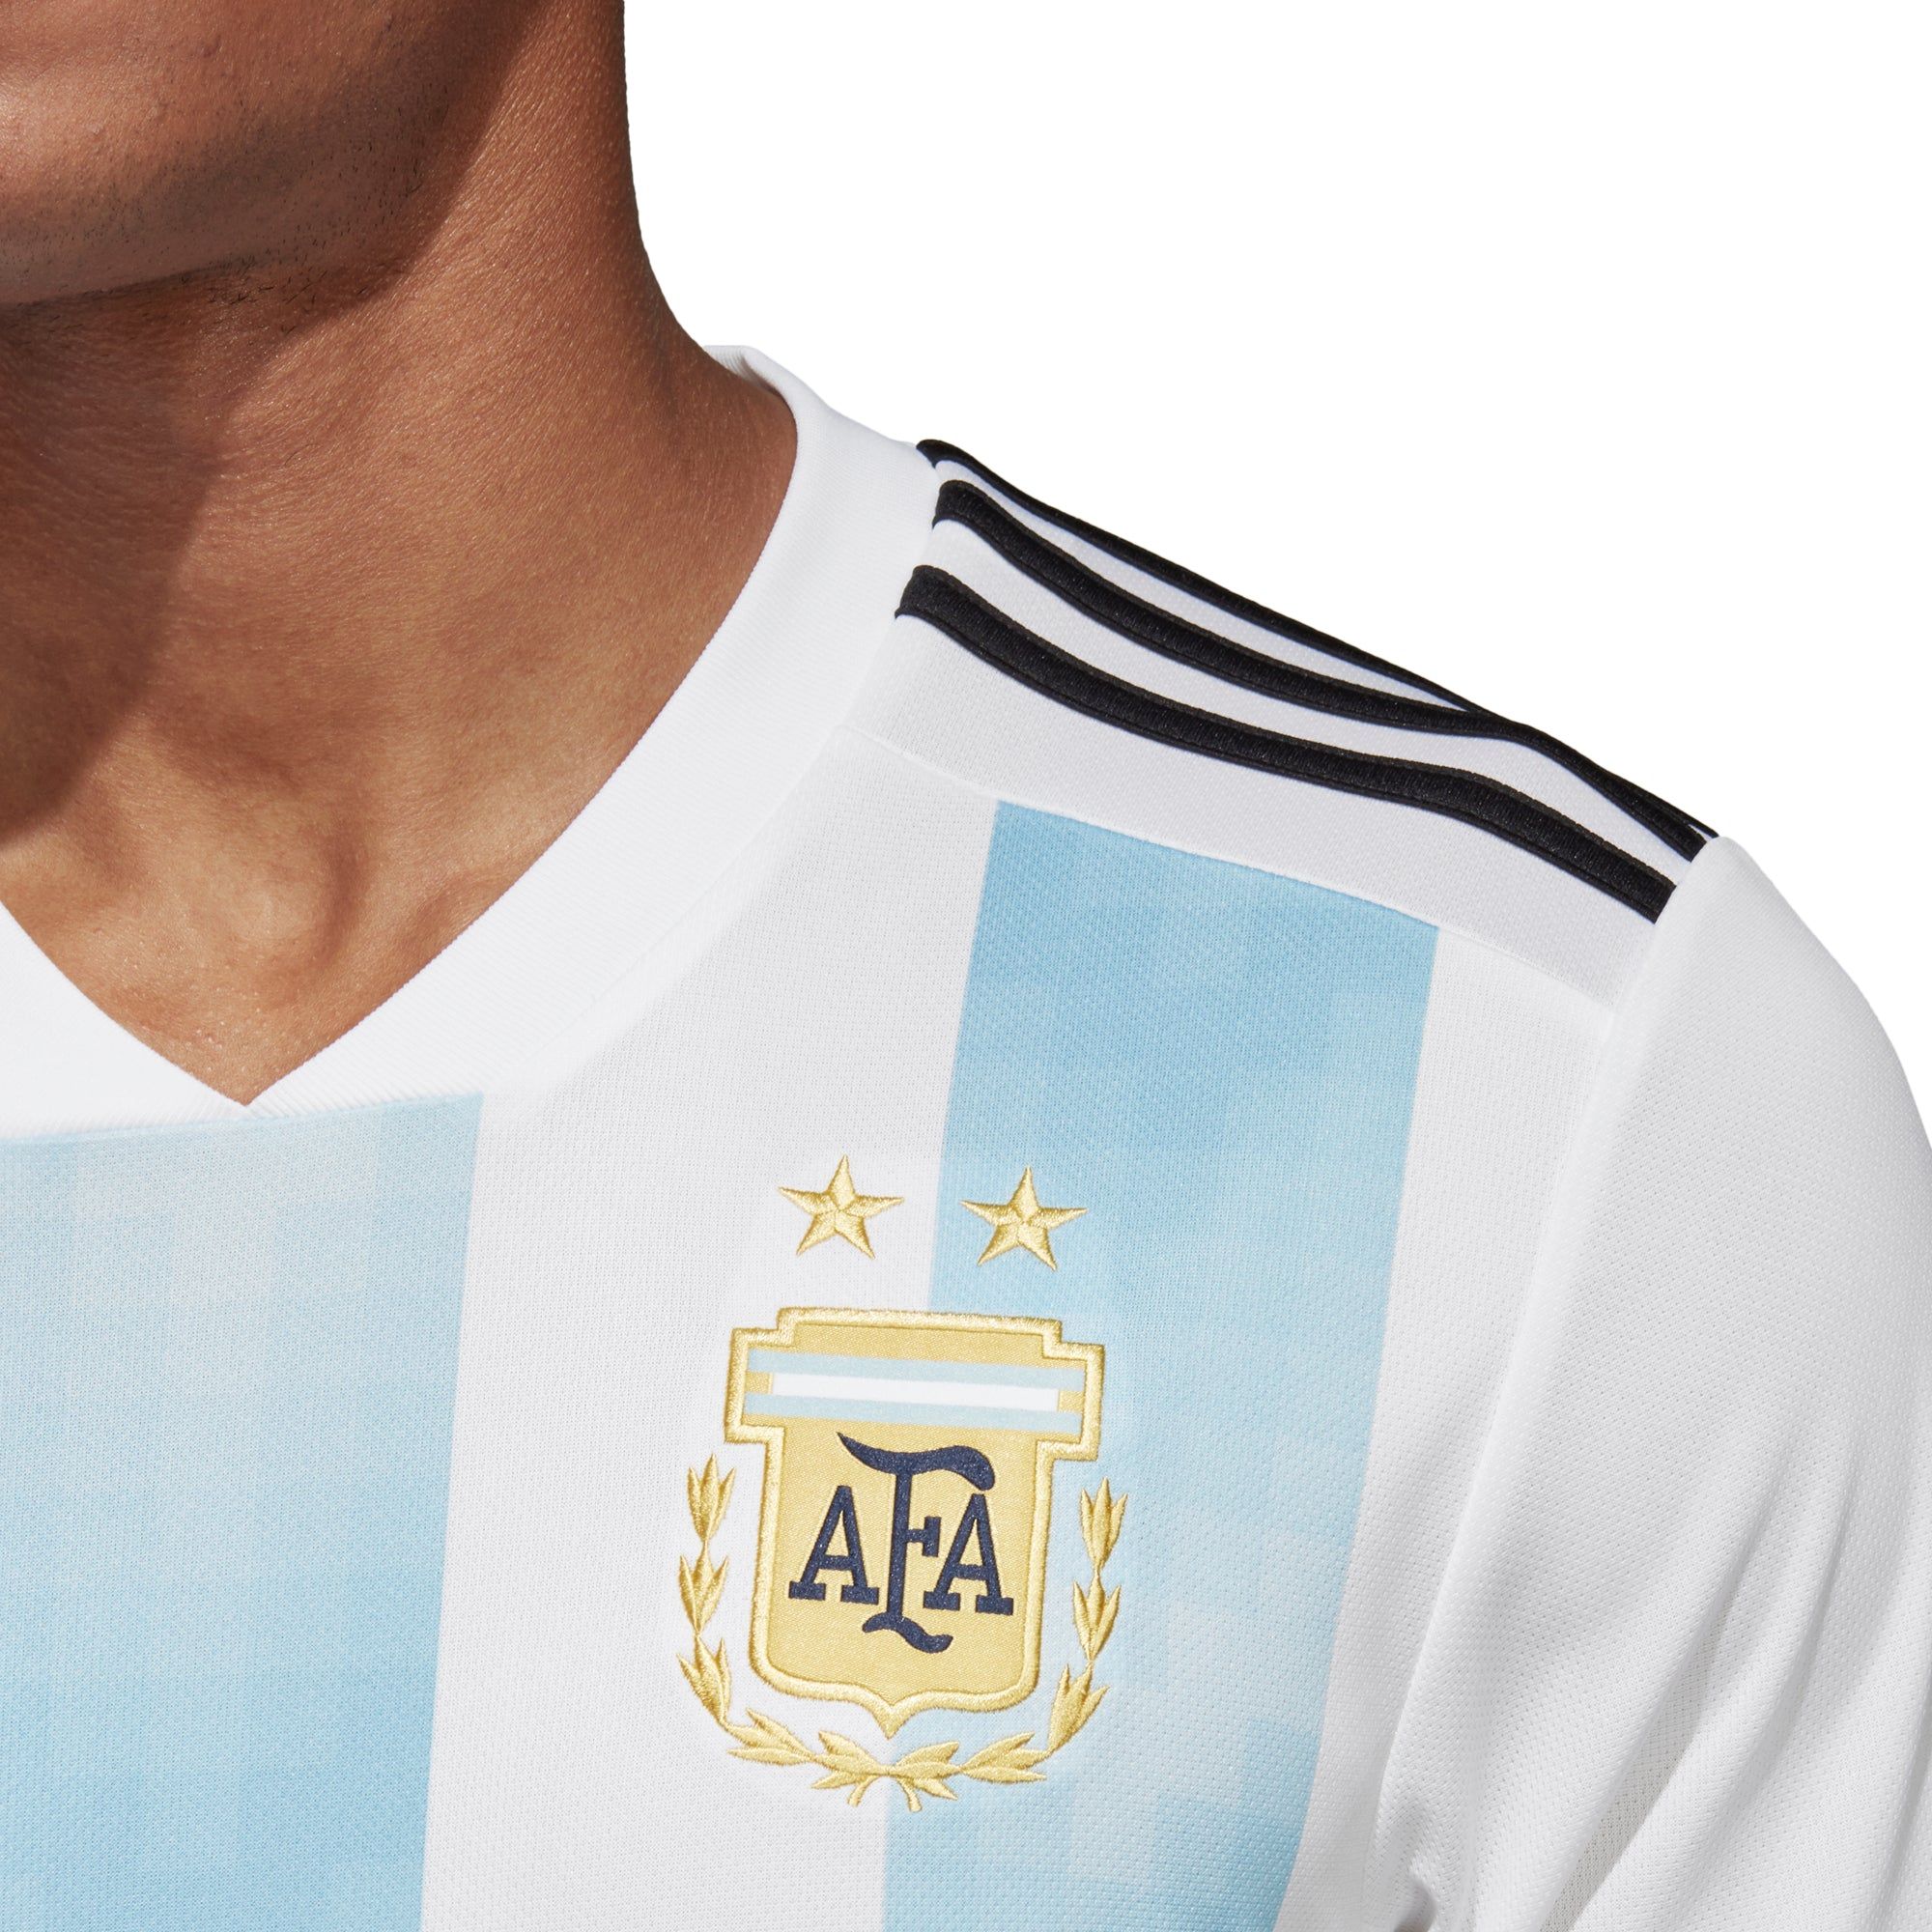 Adidas World Cup 2018 Home Jersey Argentina Germany Spain Fashion Big Size T Shirt 2xl